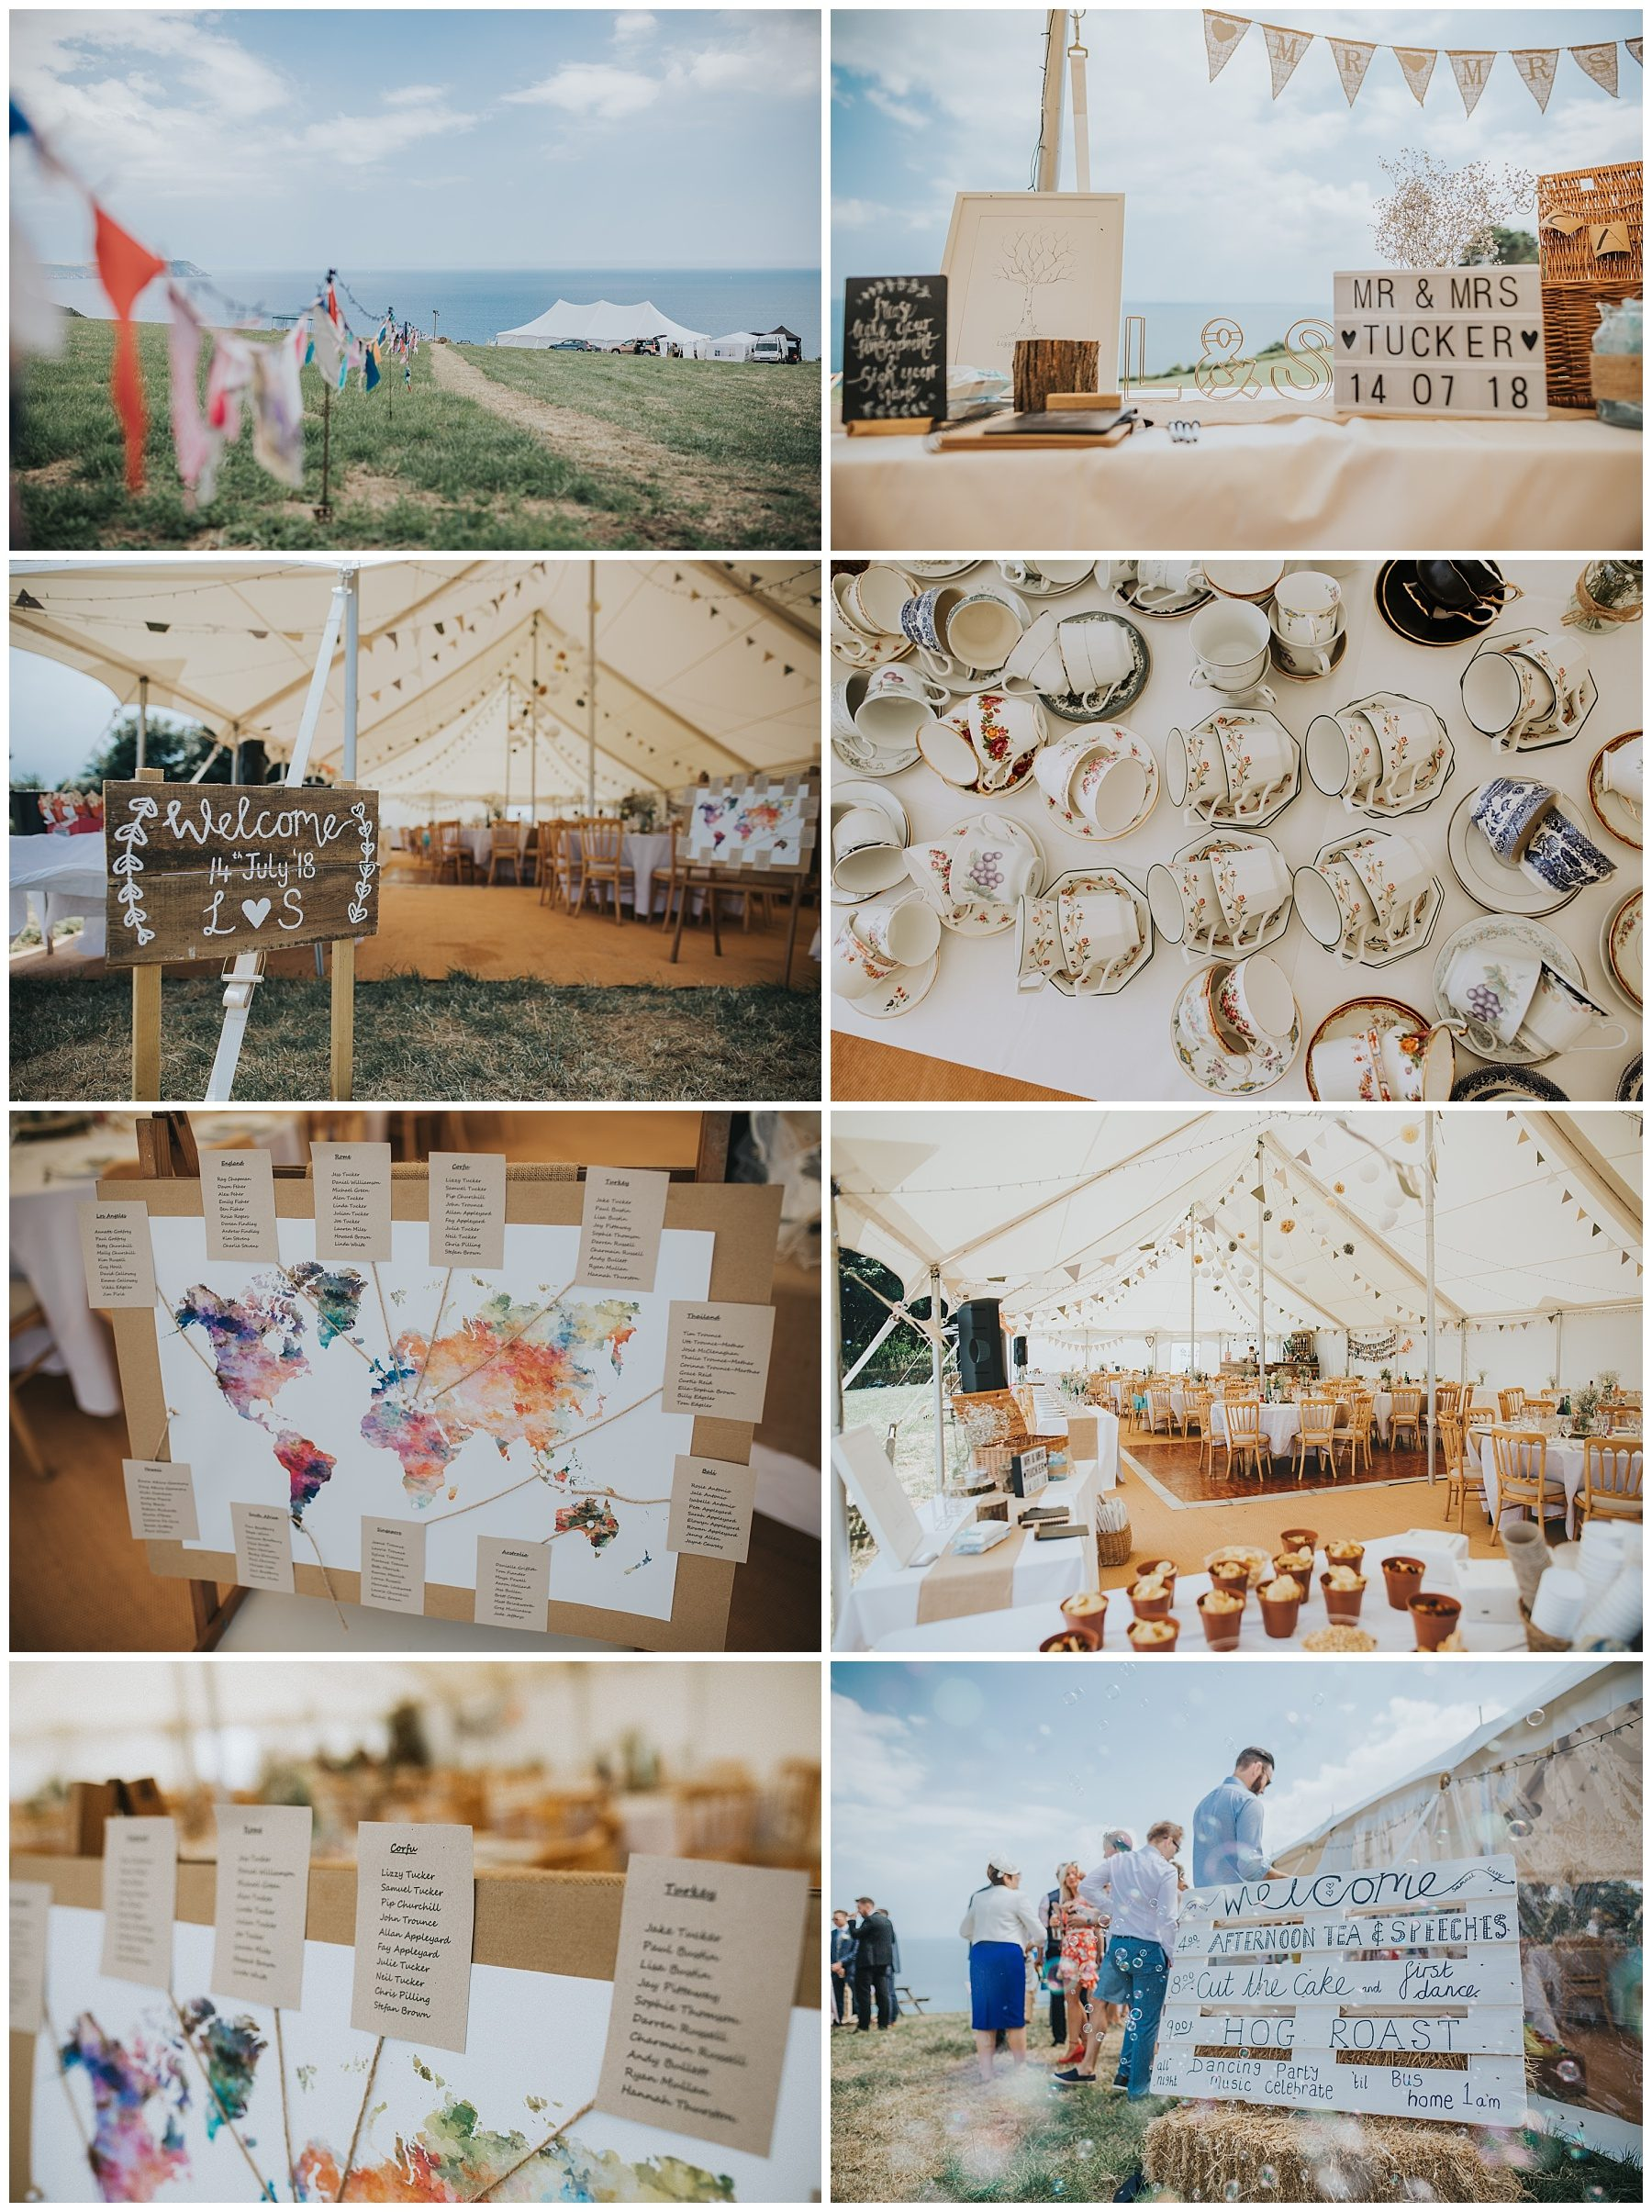 Cornwall wedding marquee details